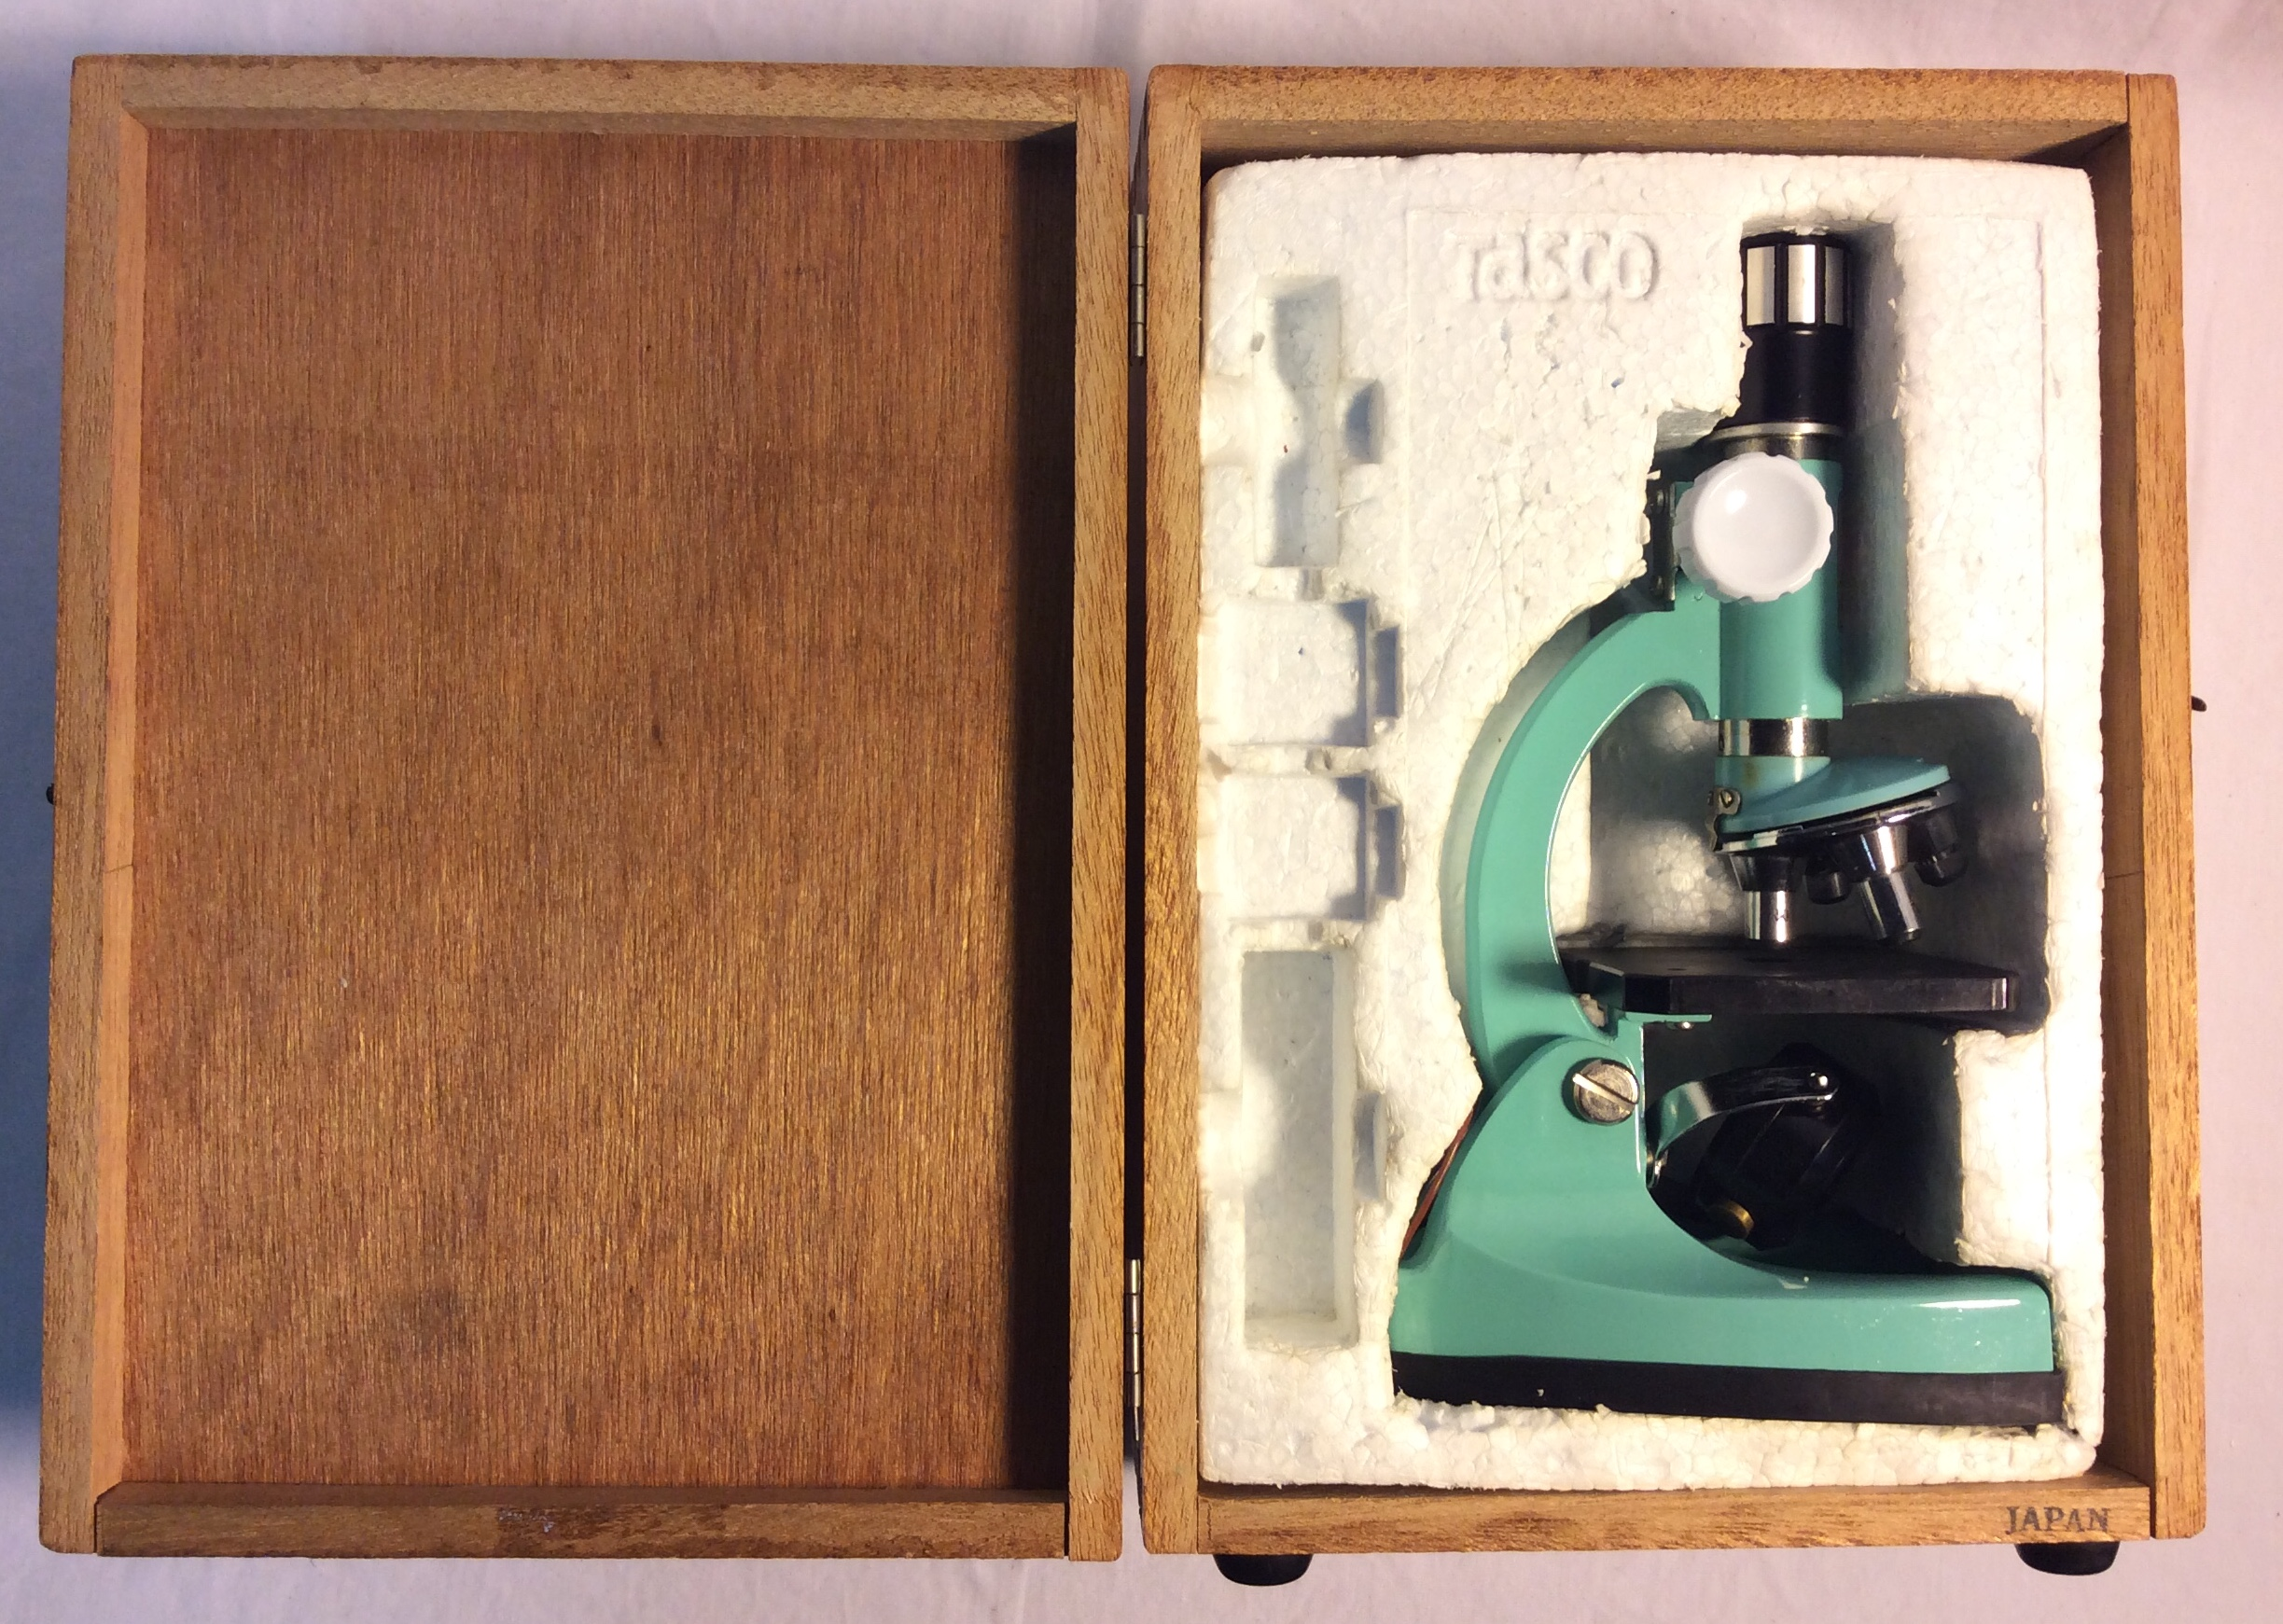 Tasco Deluxe Microscope in a wooden